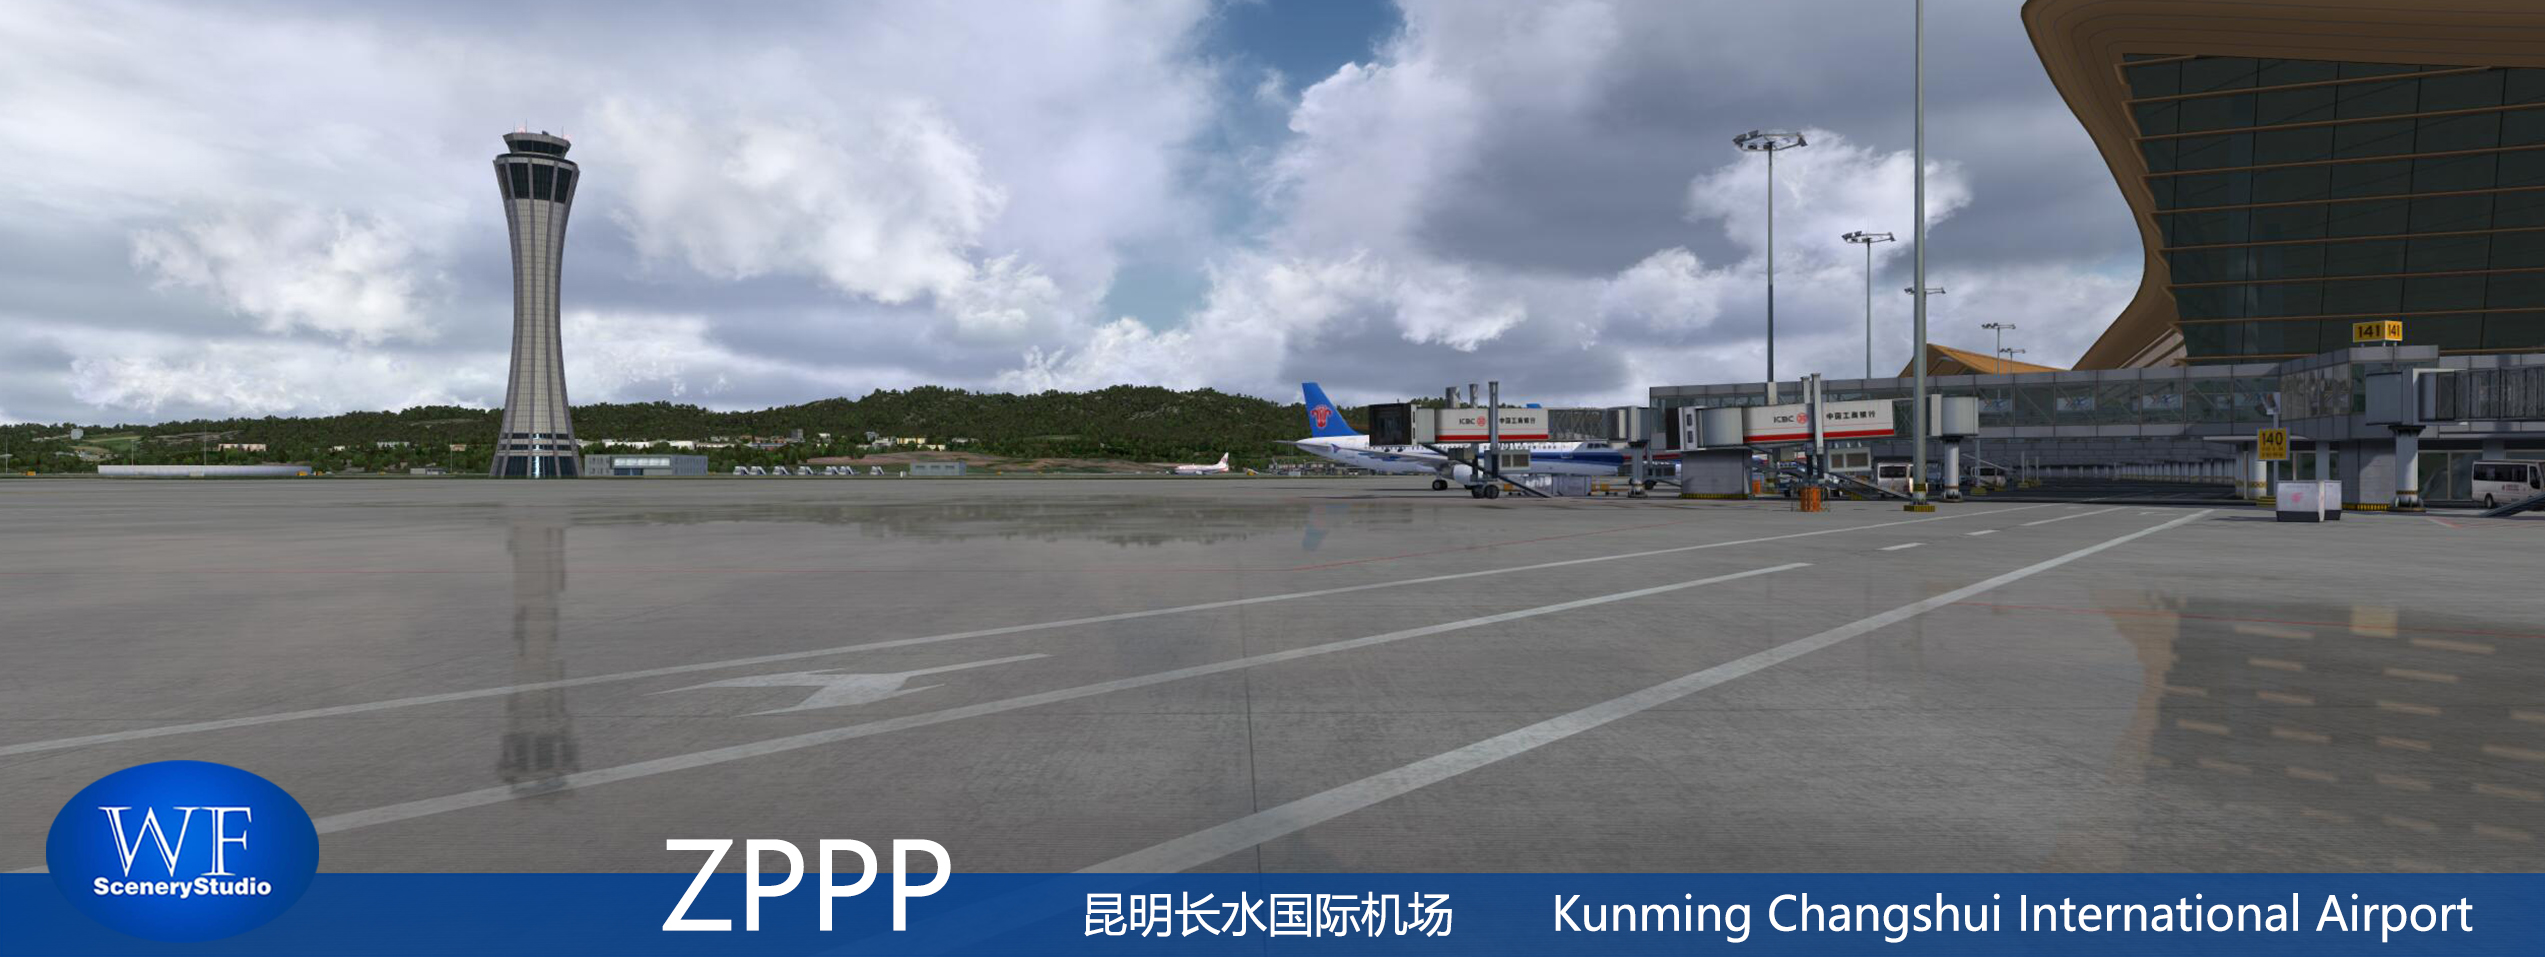 WF SCENERY STUDIO - KUNMING CHANGSHUI INTERNATIONAL AIRPORT ZPPP P3D4